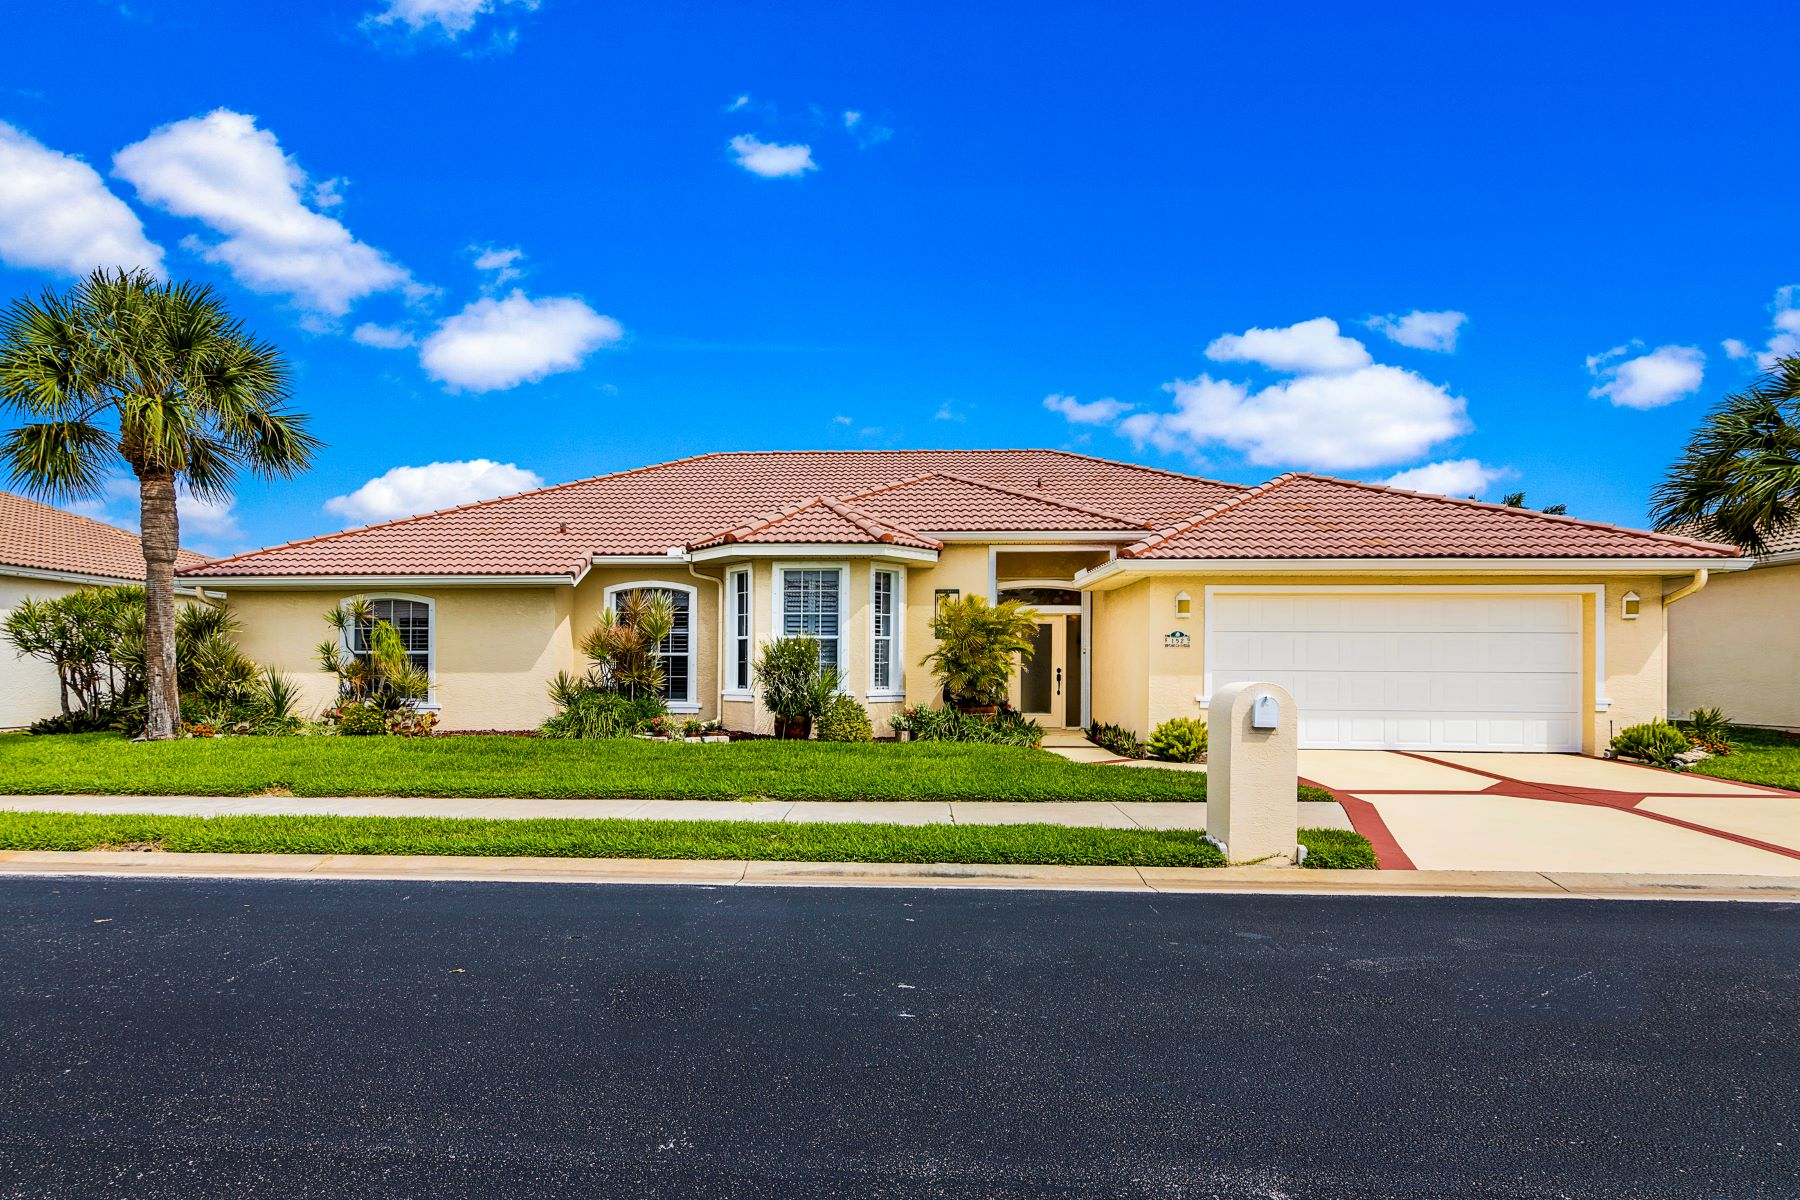 Single Family Homes for Sale at 152 Sanibel Way Melbourne Beach, Florida 32951 United States